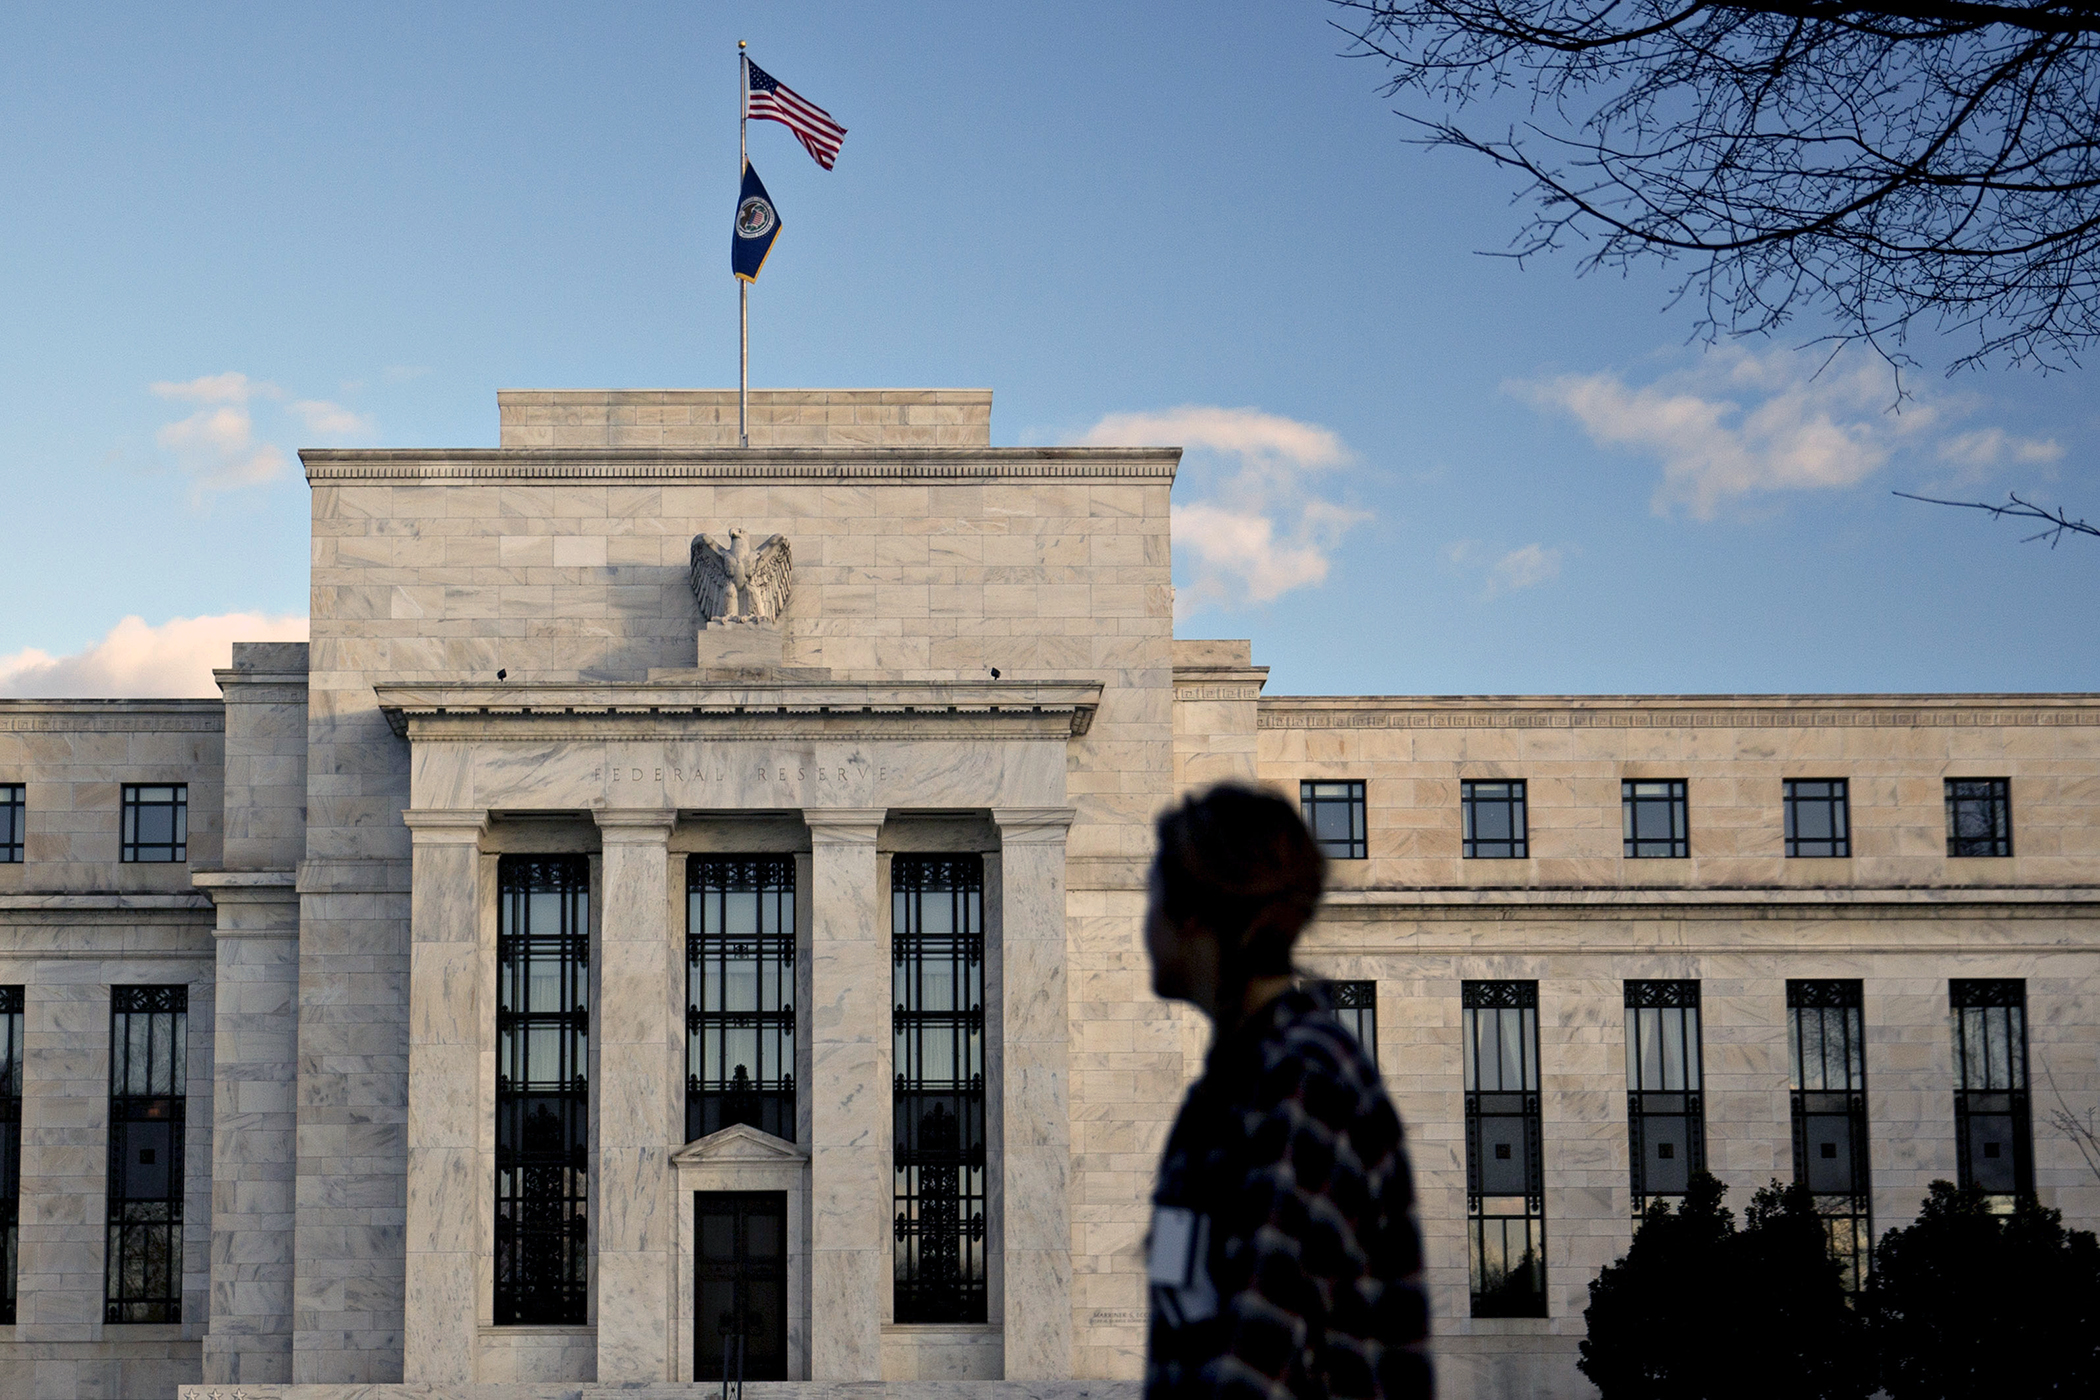 A pedestrian walks past the Marriner S. Eccles Federal Reserve building in Washington, D.C., on December 15, 2015.